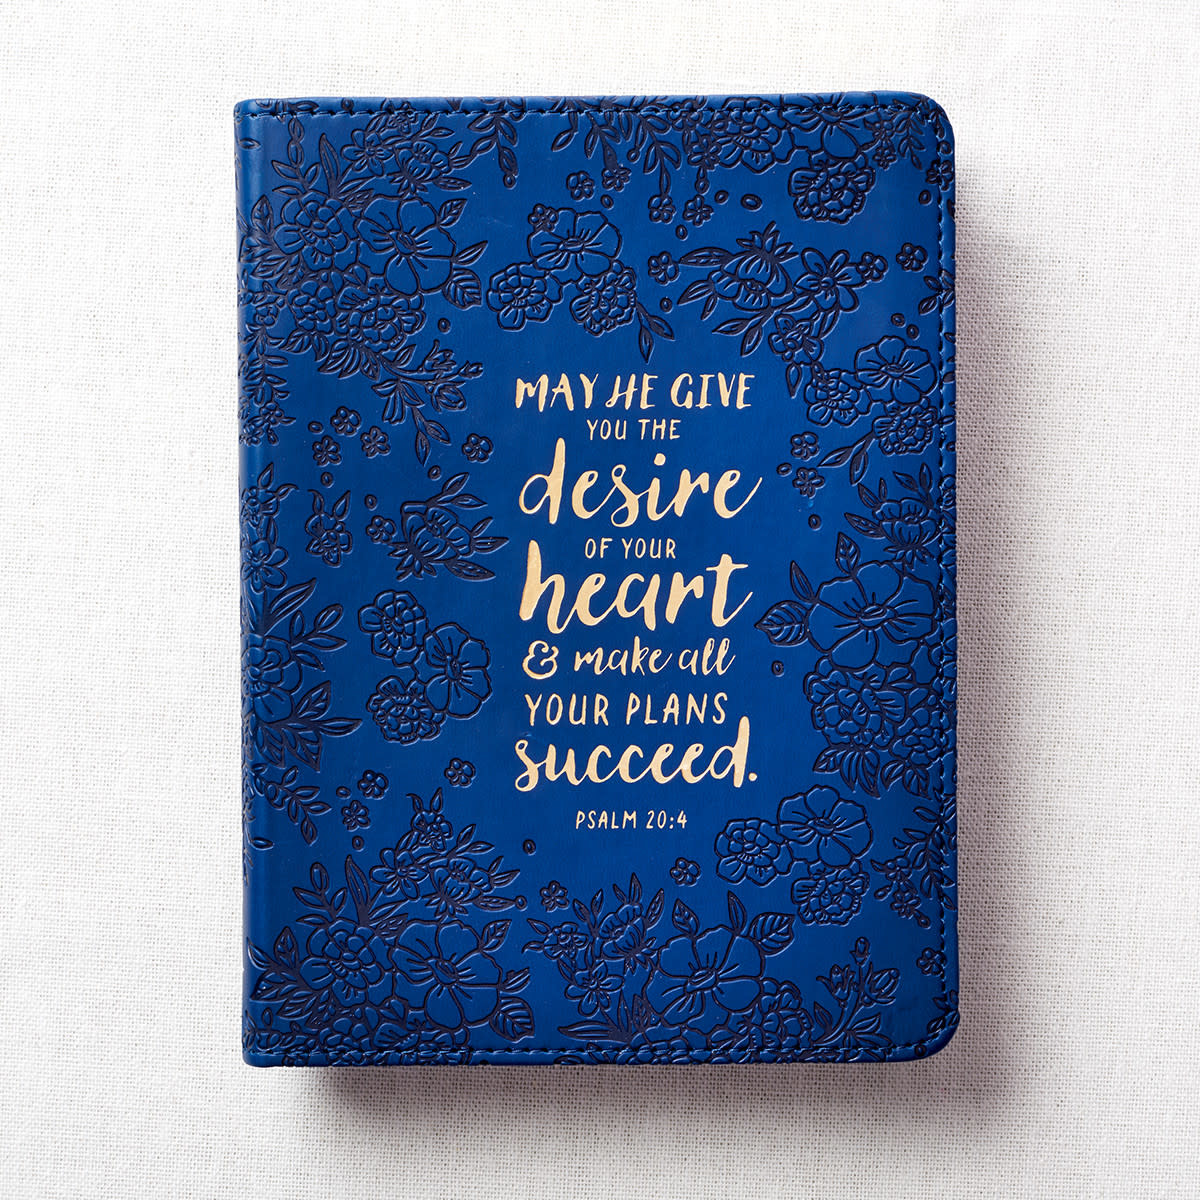 May He give desires journal